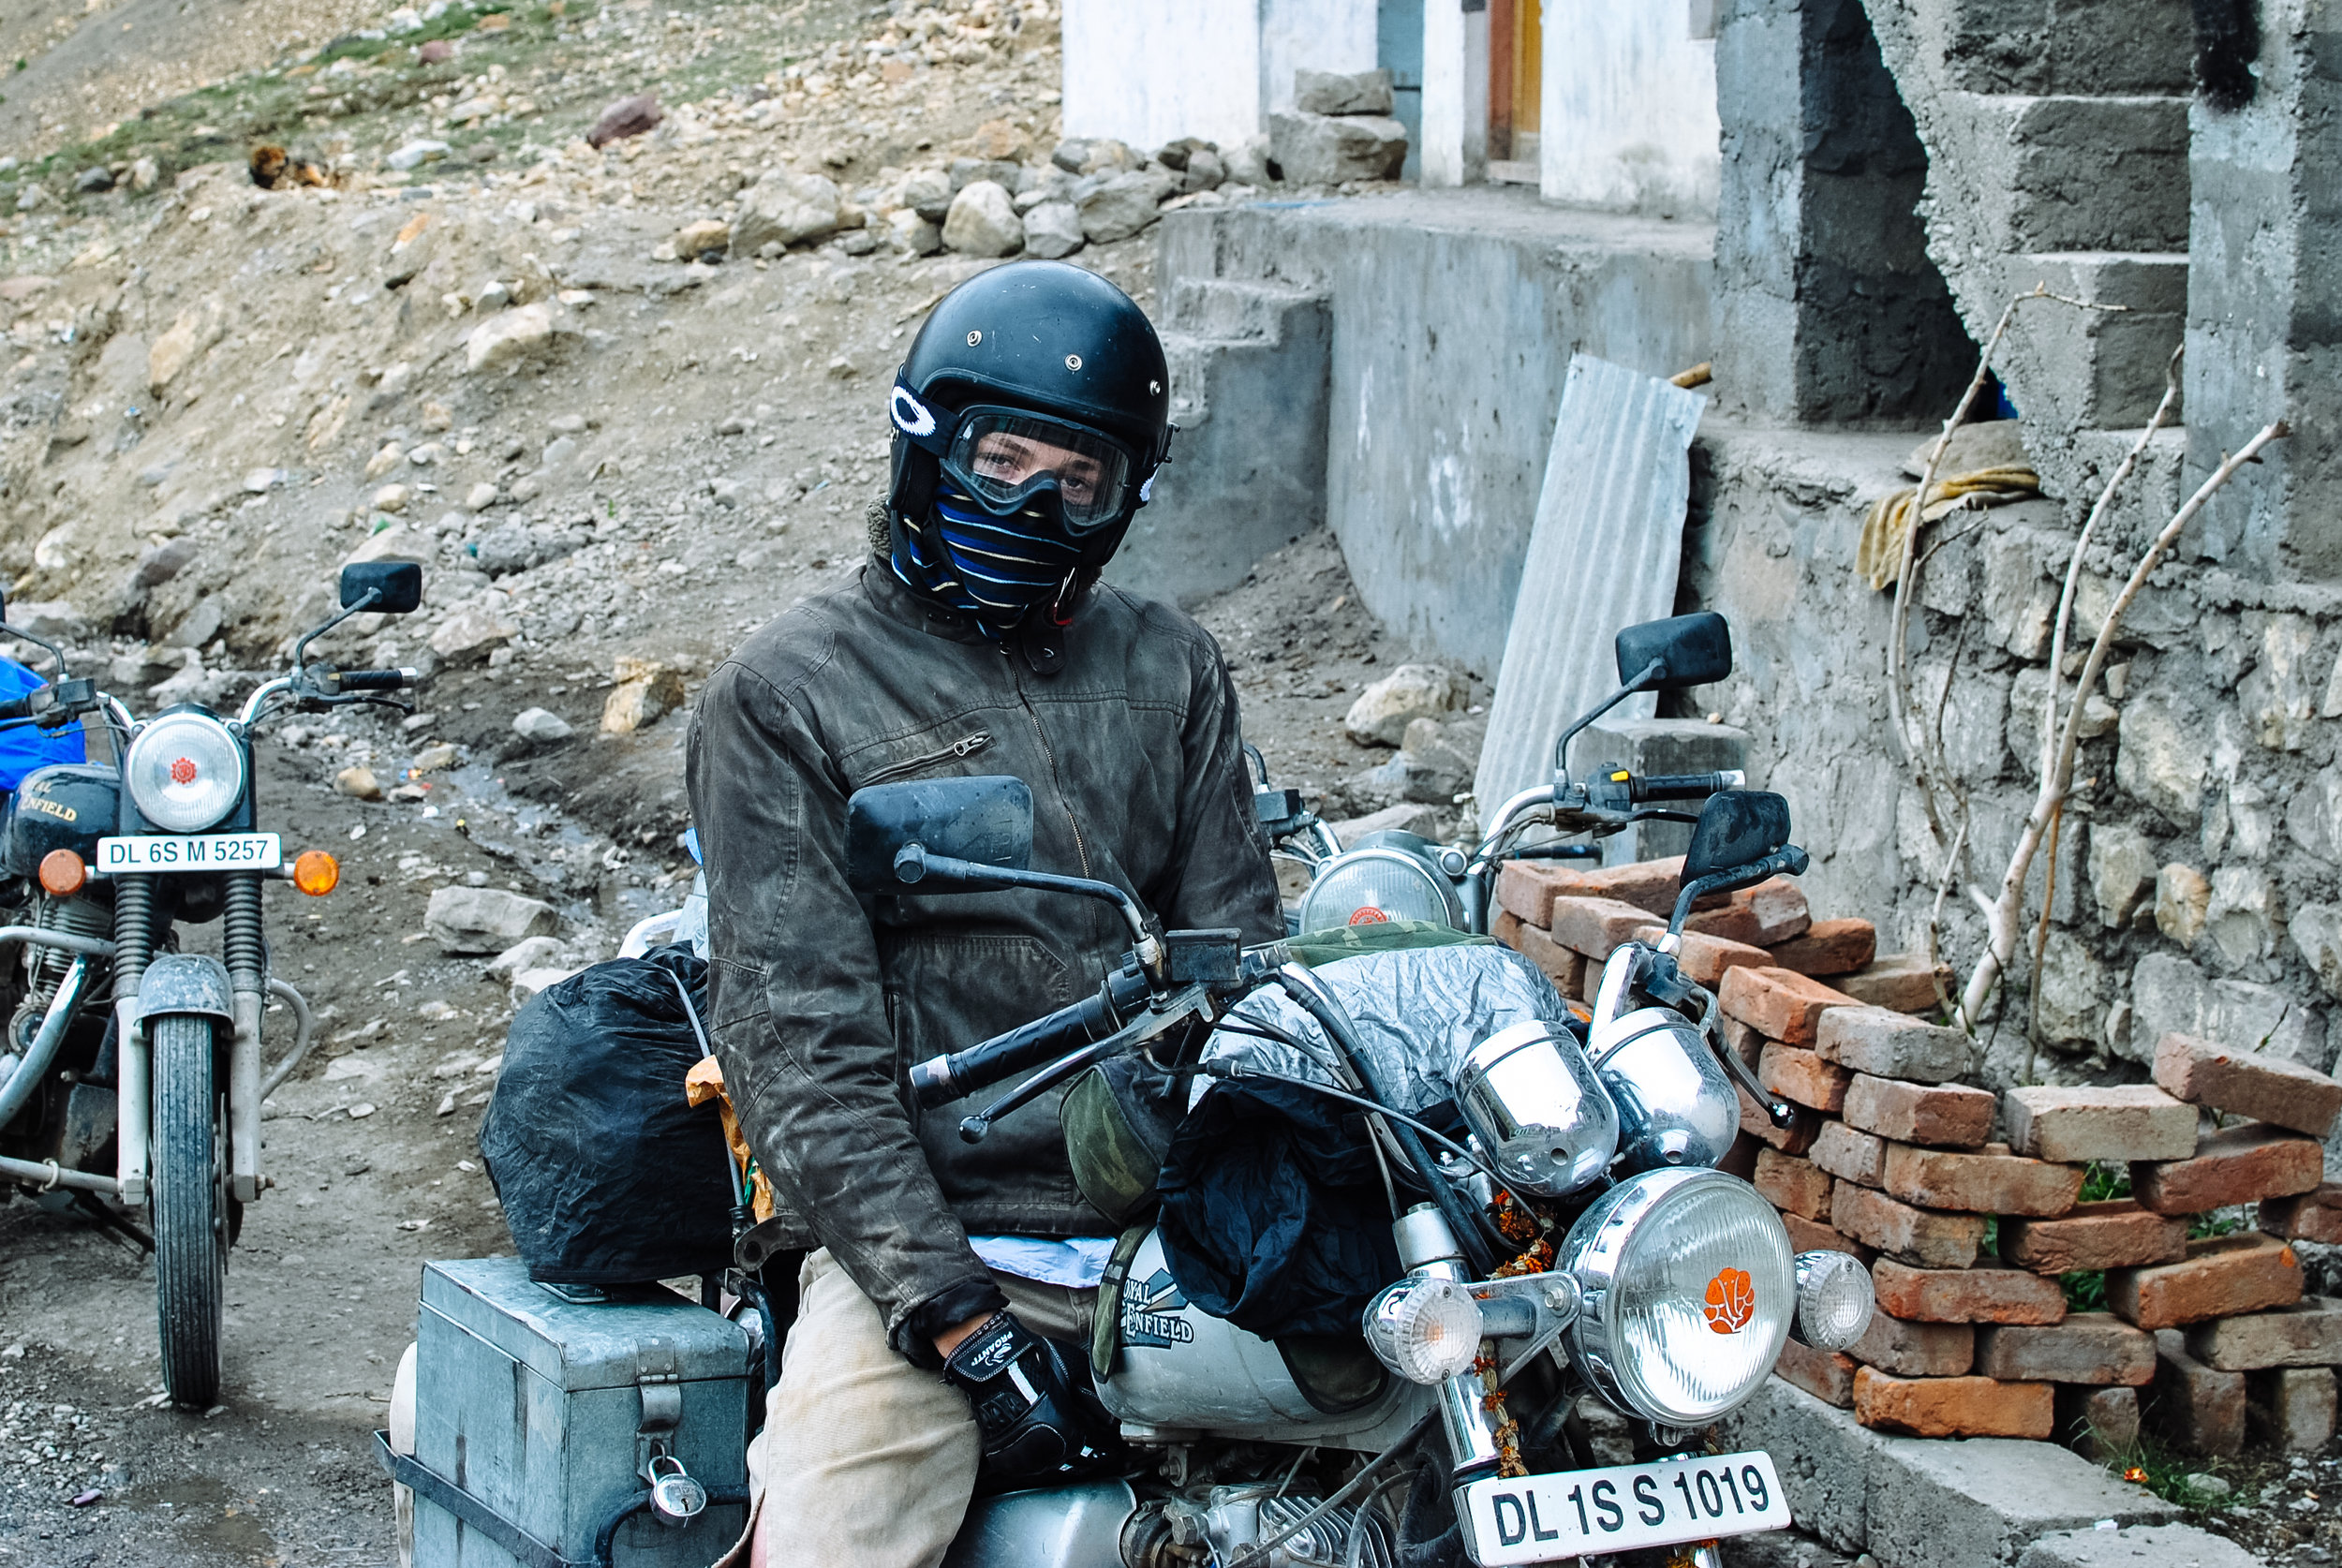 Me in my full motorbiking gear